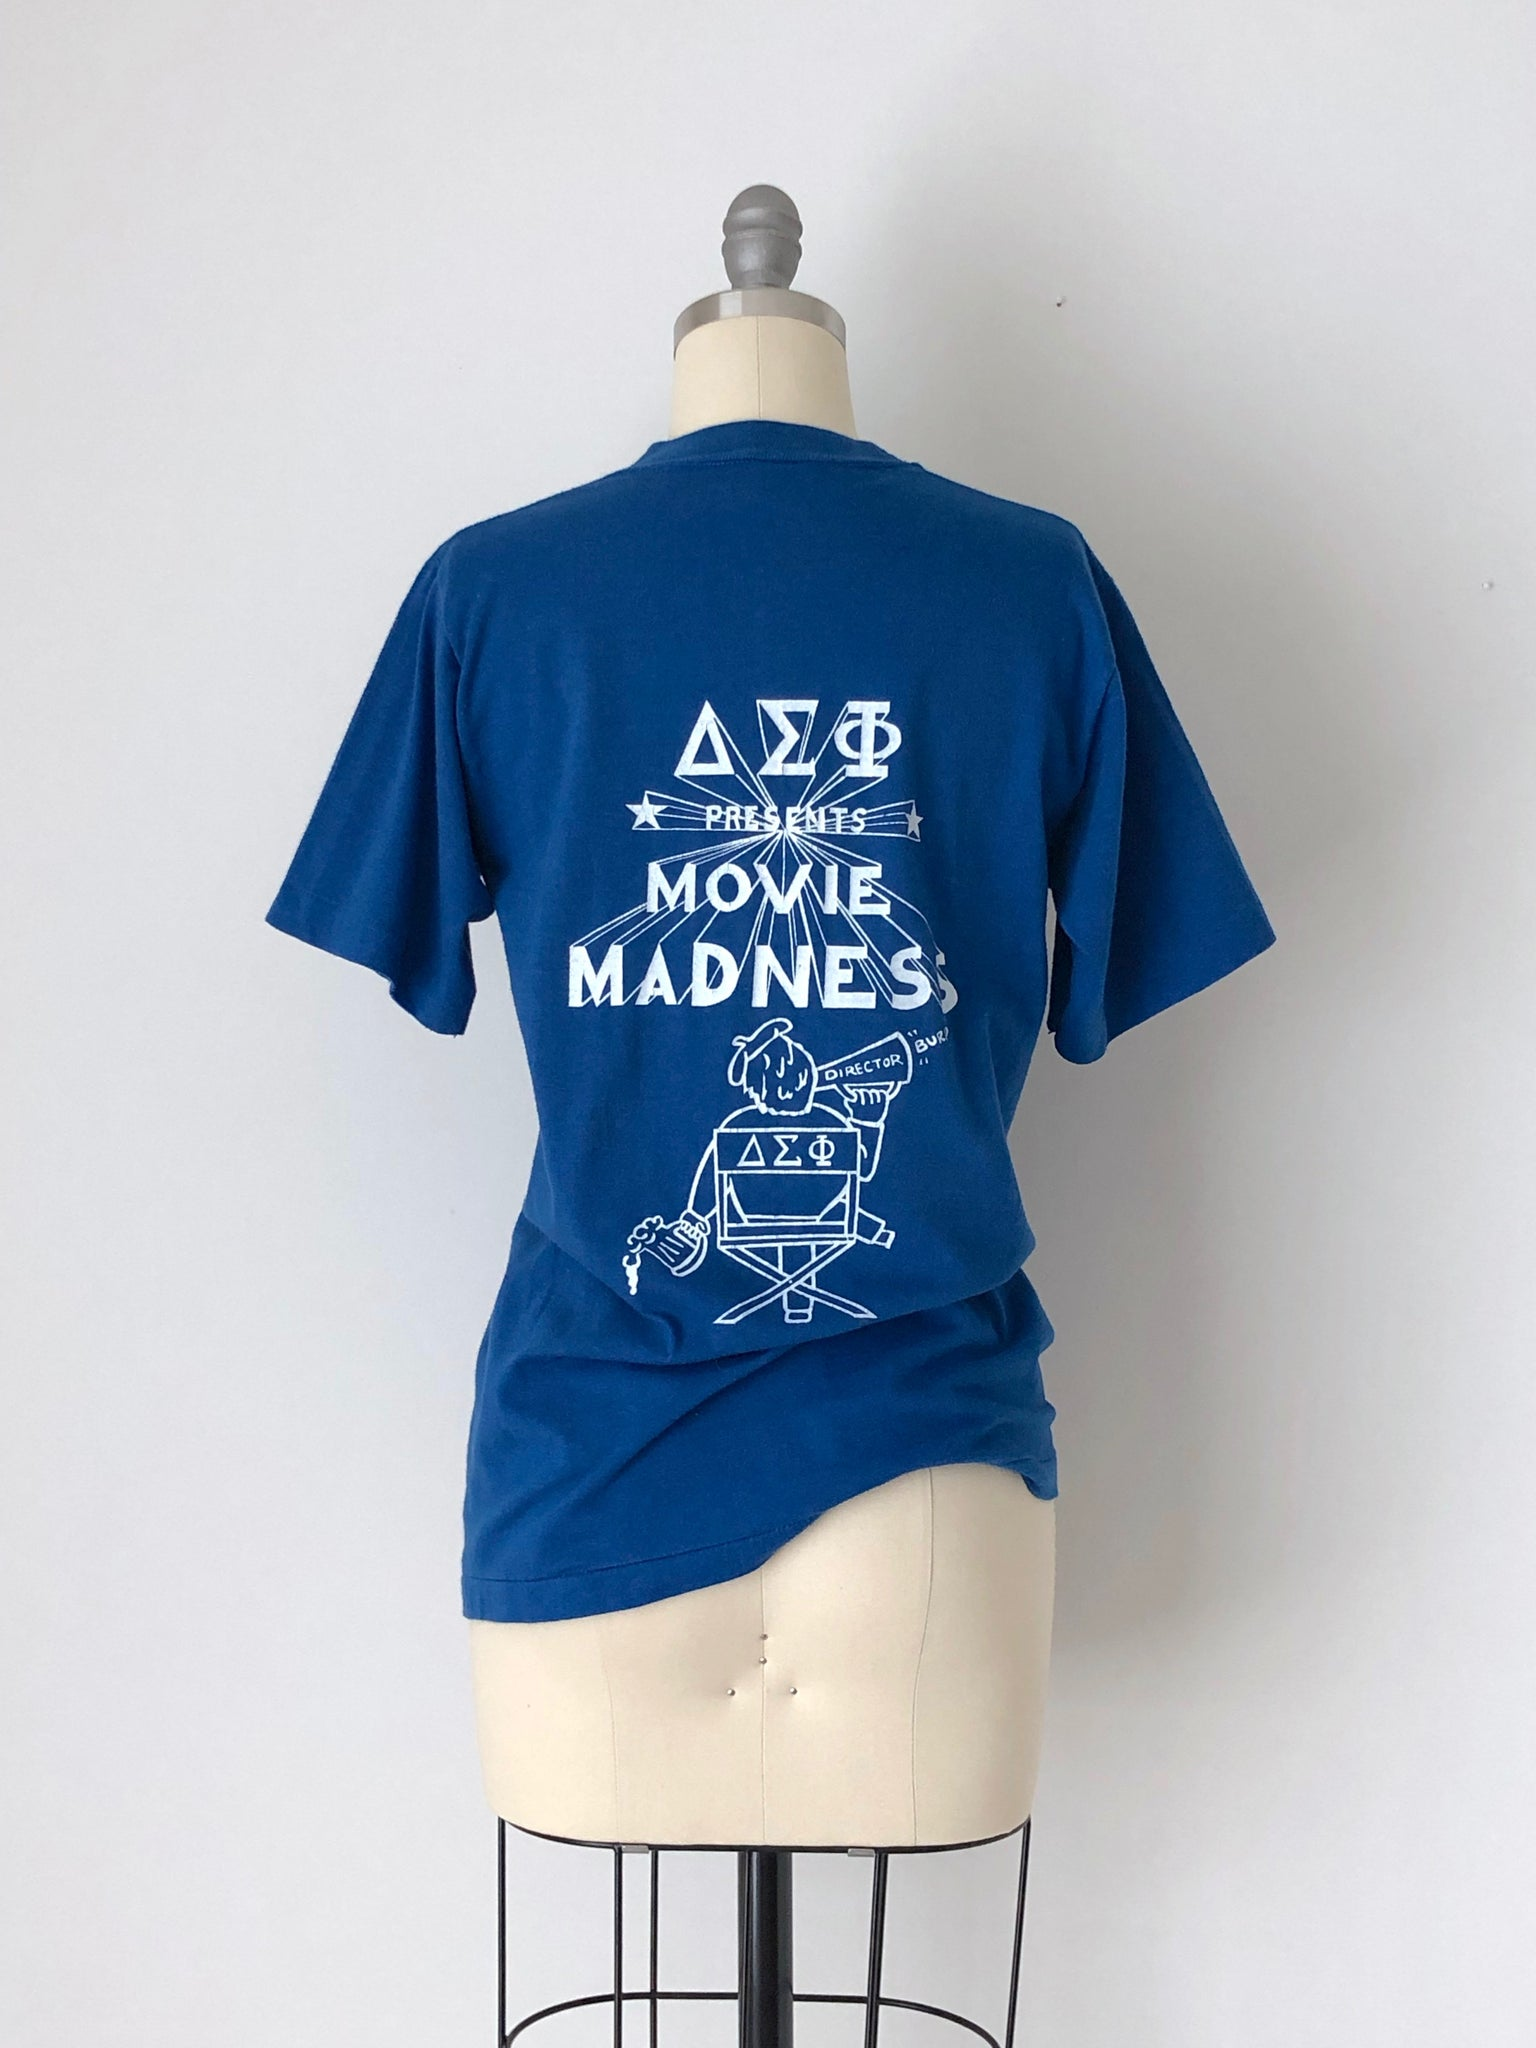 Vintage 1981 Delta Sigma Phi Fraternity Blue Cotton Blend T-Shirt by Sportswear